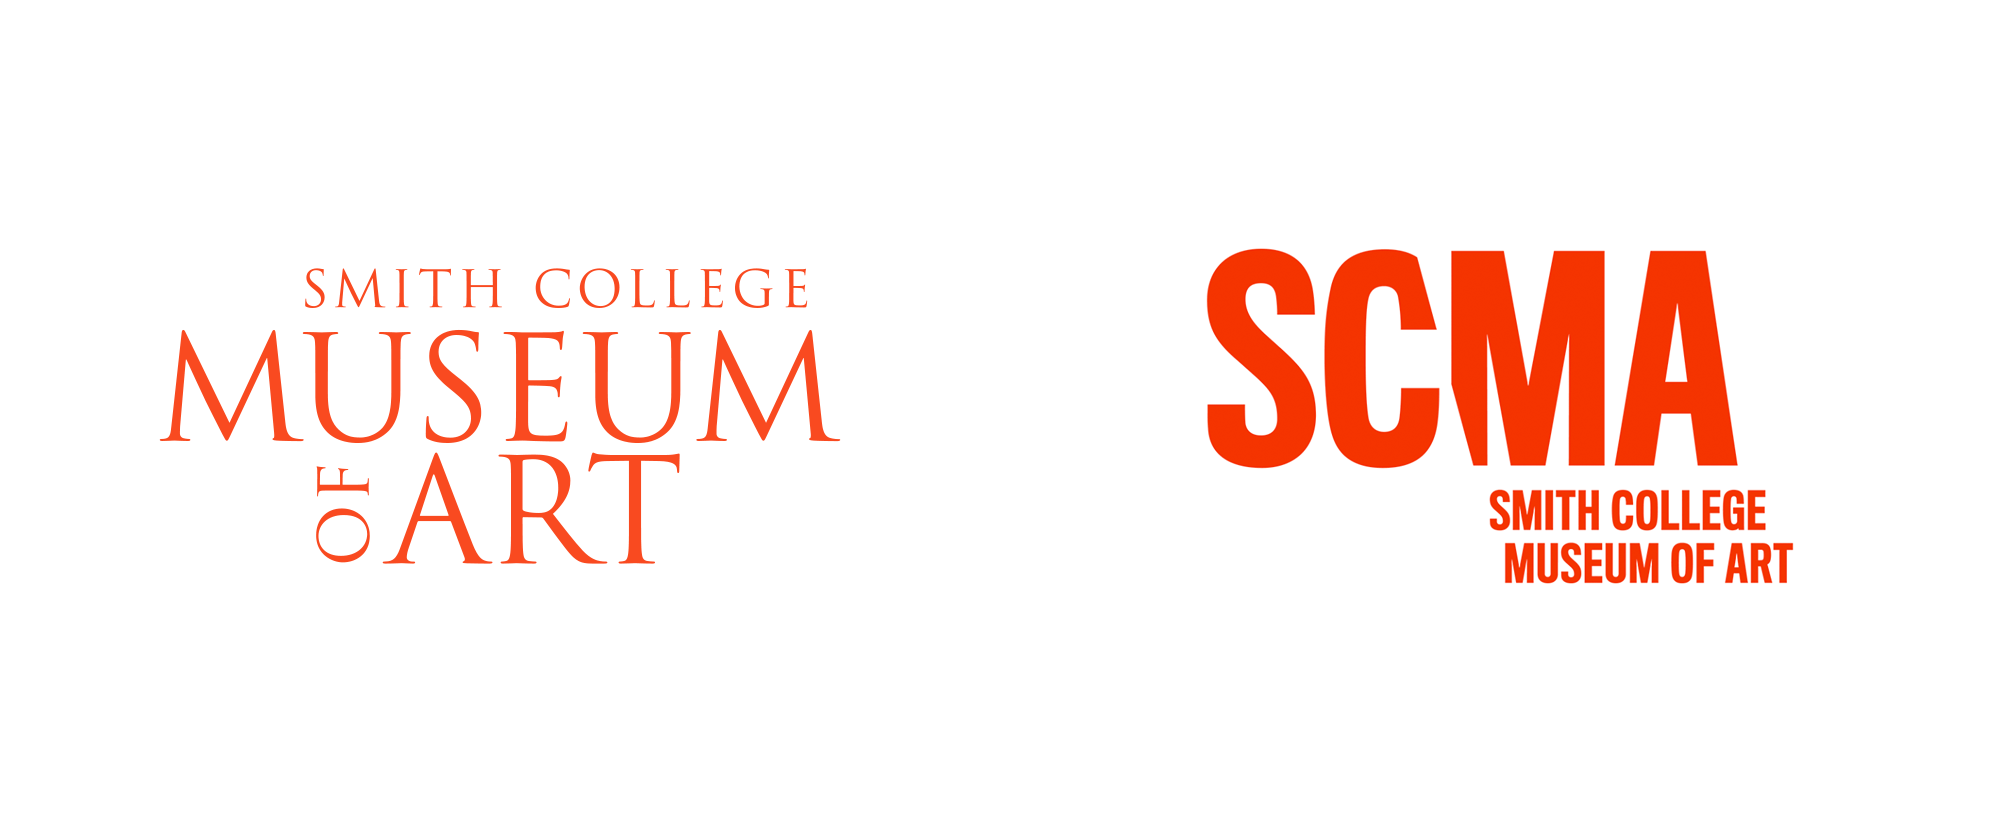 New Logo and Identity for Smith College Museum of Art by Minelli